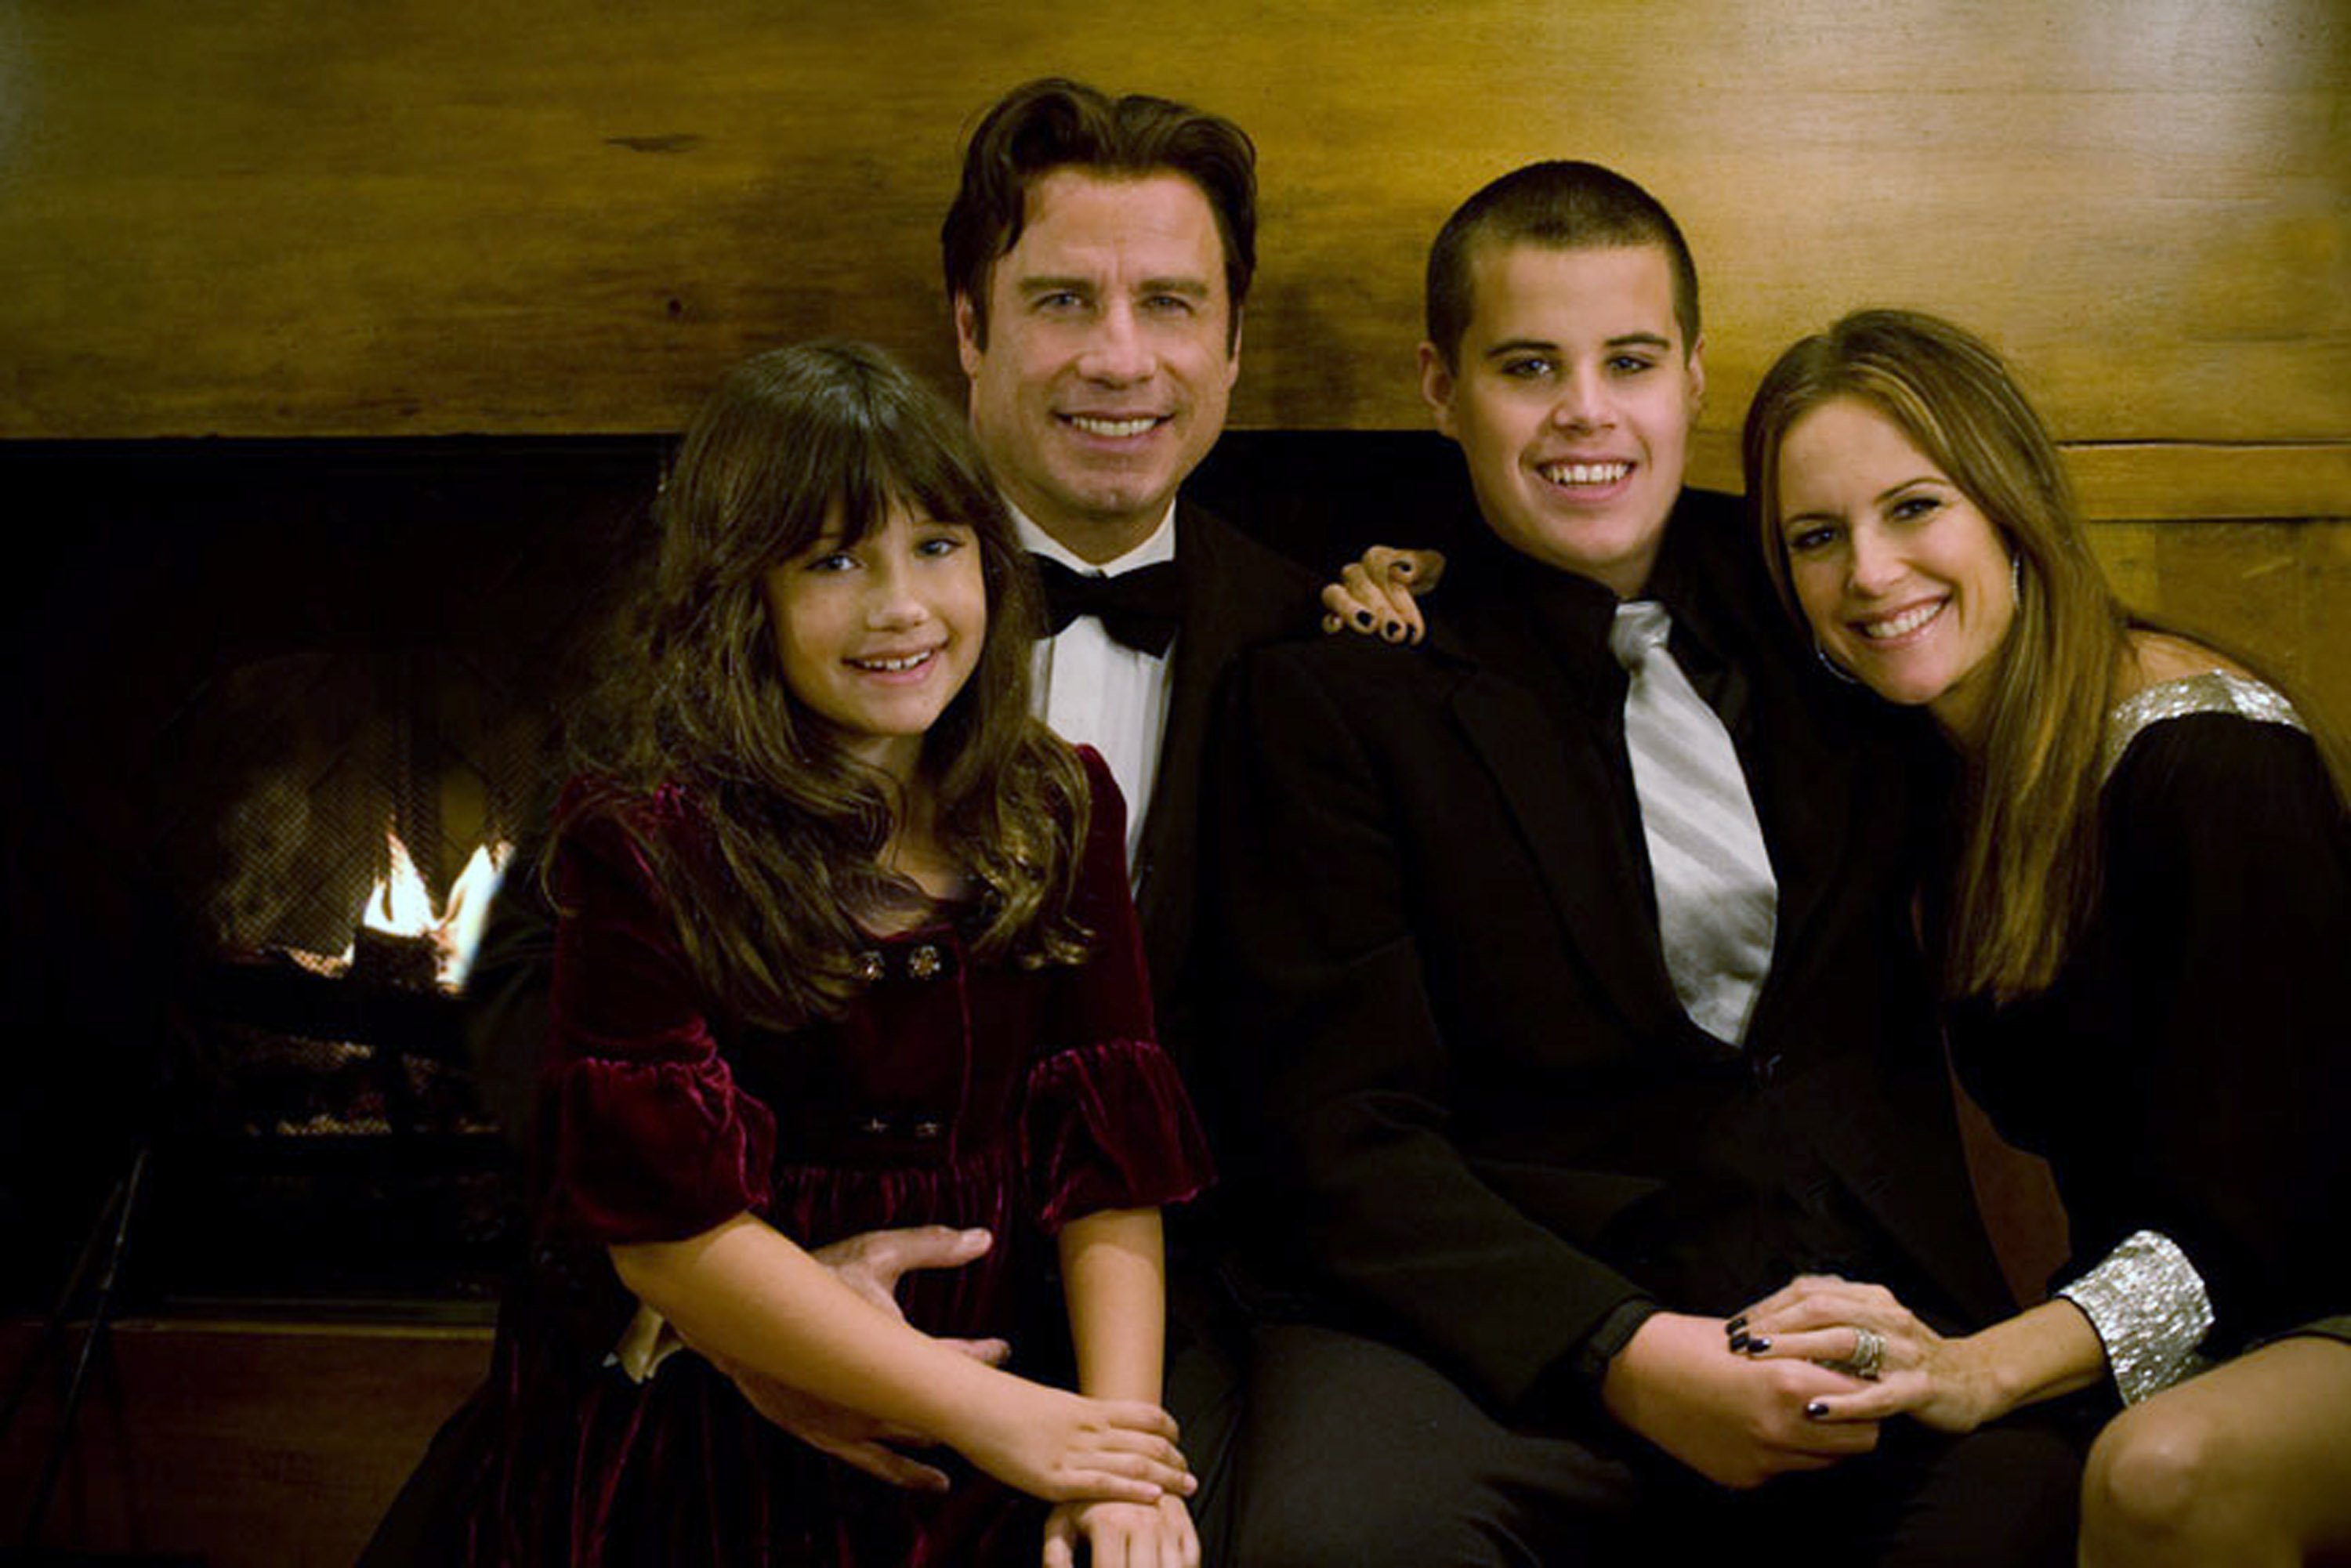 John Travolta with late son Jett, wife Kelly Preson, and daughter Ella in undated family portrait | Photo: Getty Images